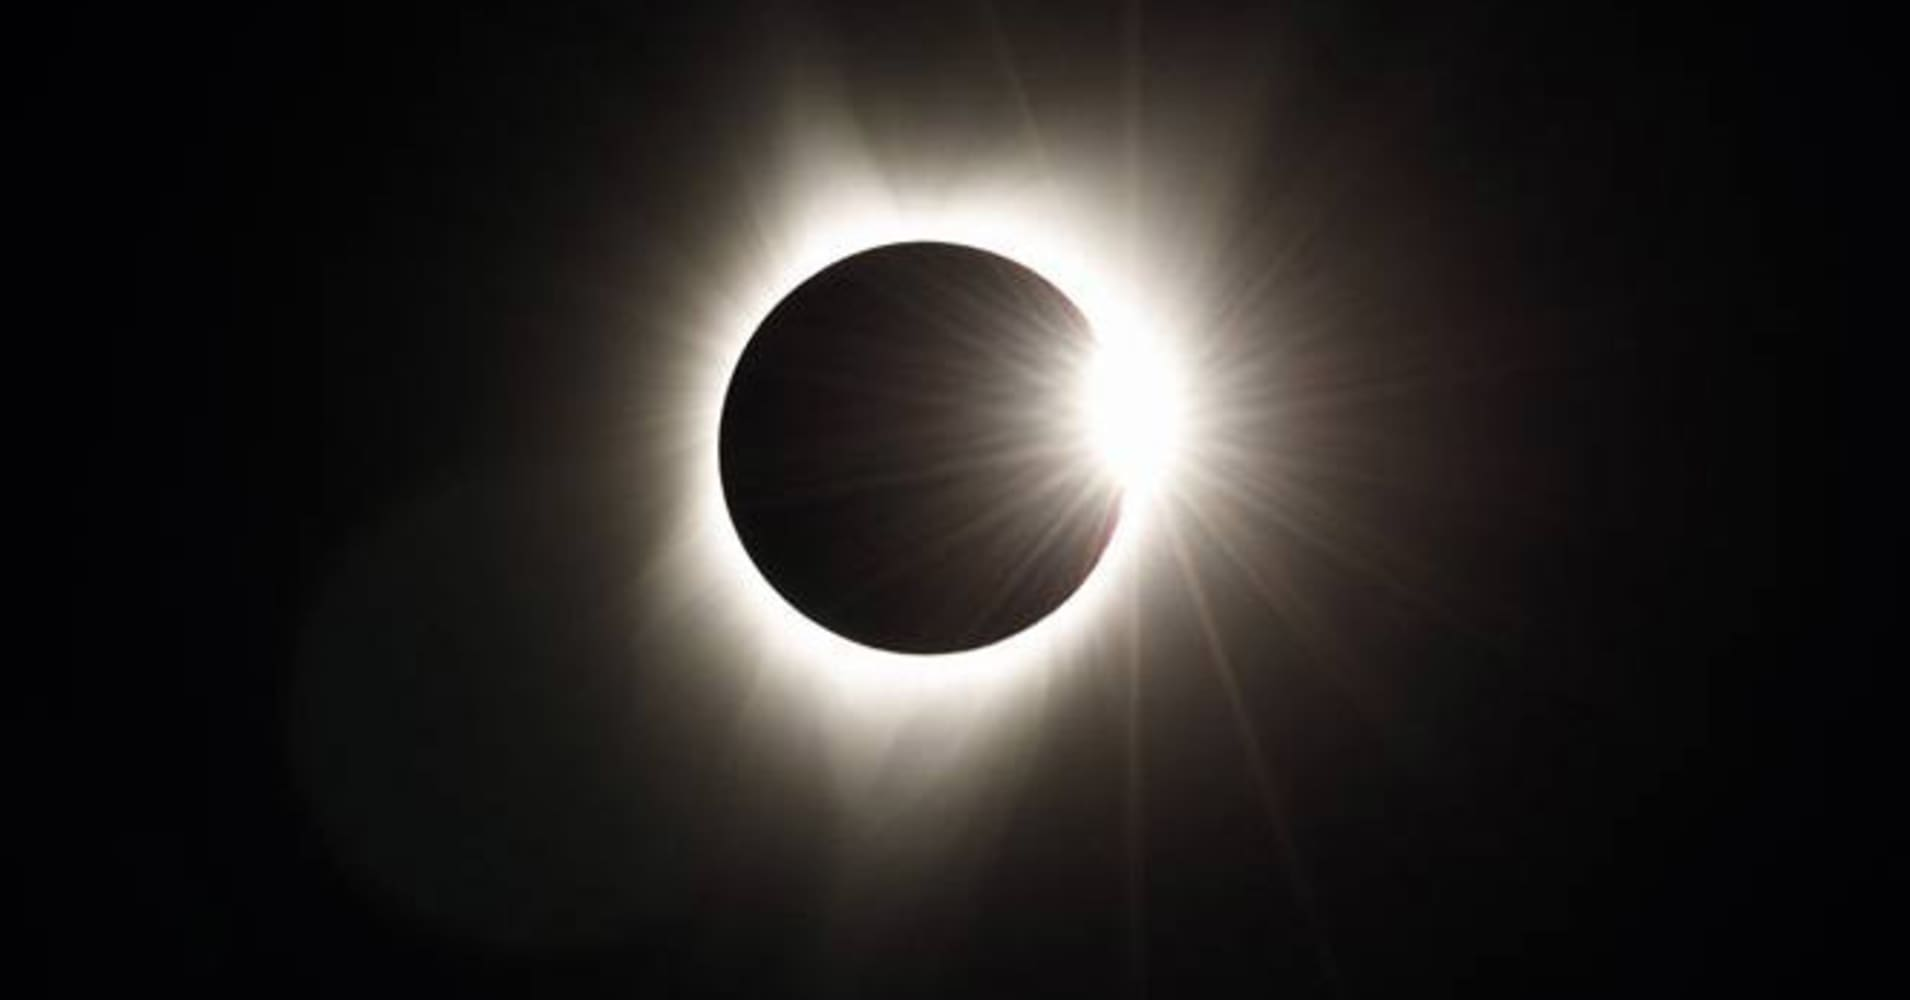 The total eclipse photos taken from atop Facebook's Oregon data center.